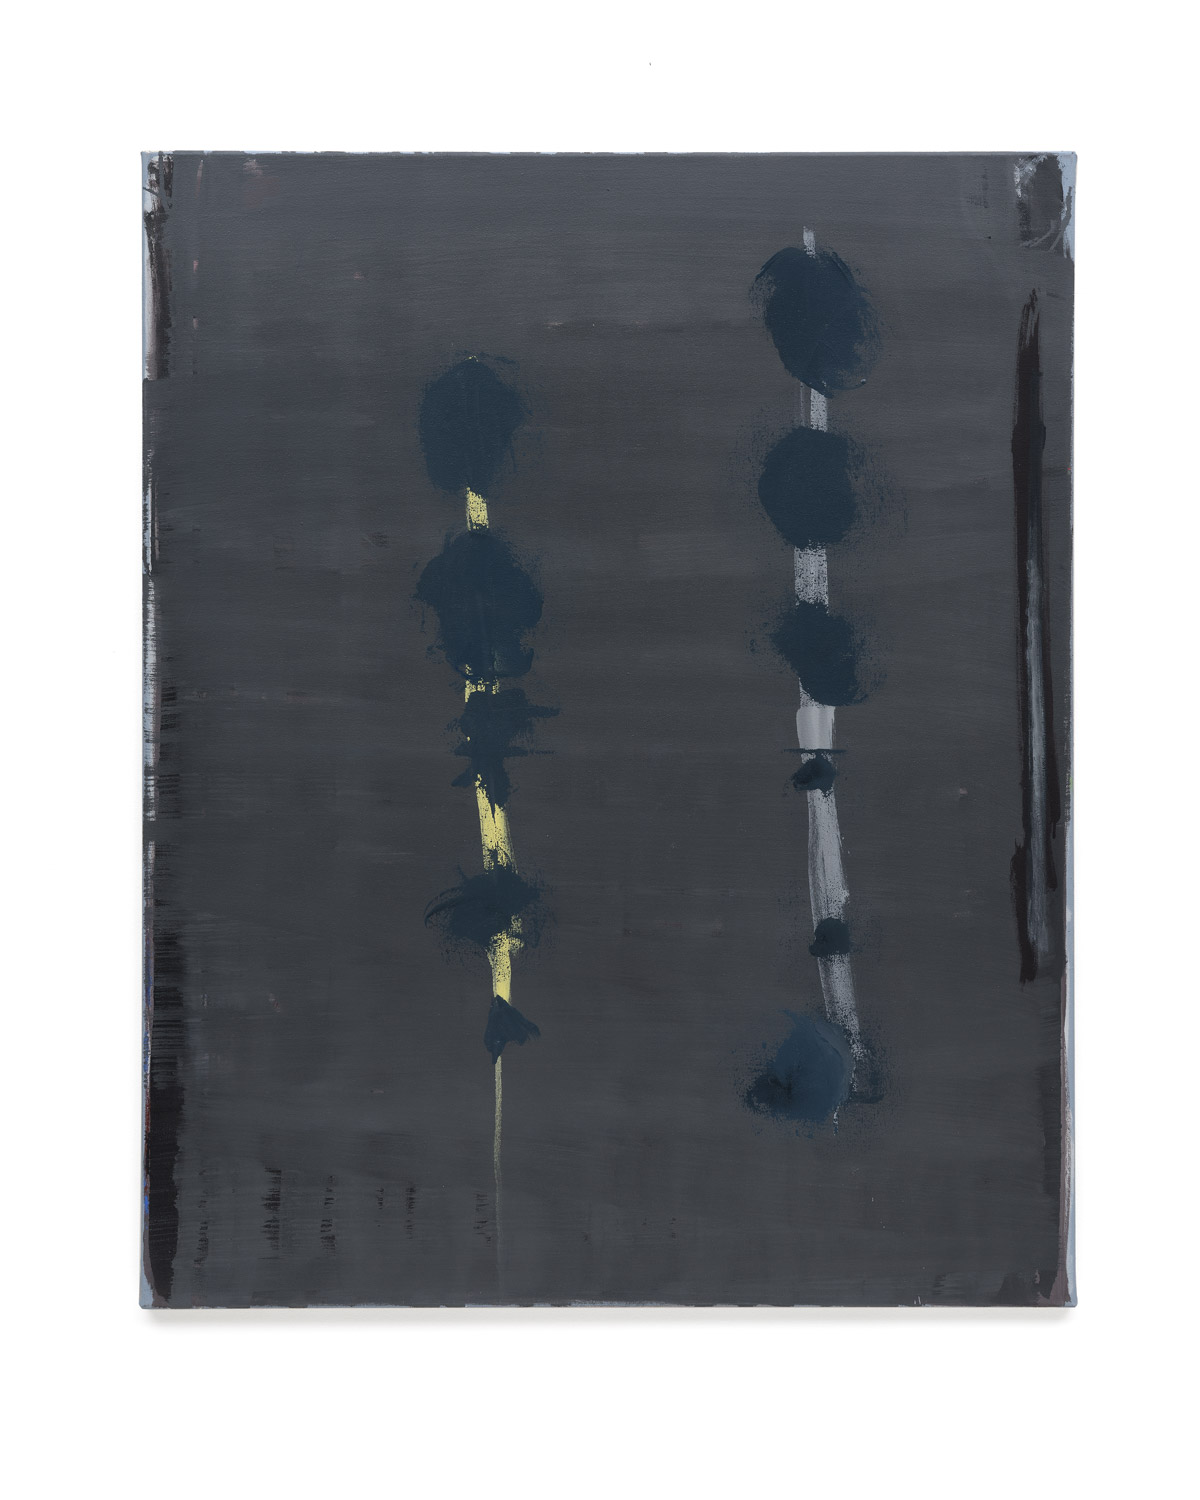 Özcan Kaplan Untitled 2018 No.6 Oil on untreated cotton 110 x 90 cm 1